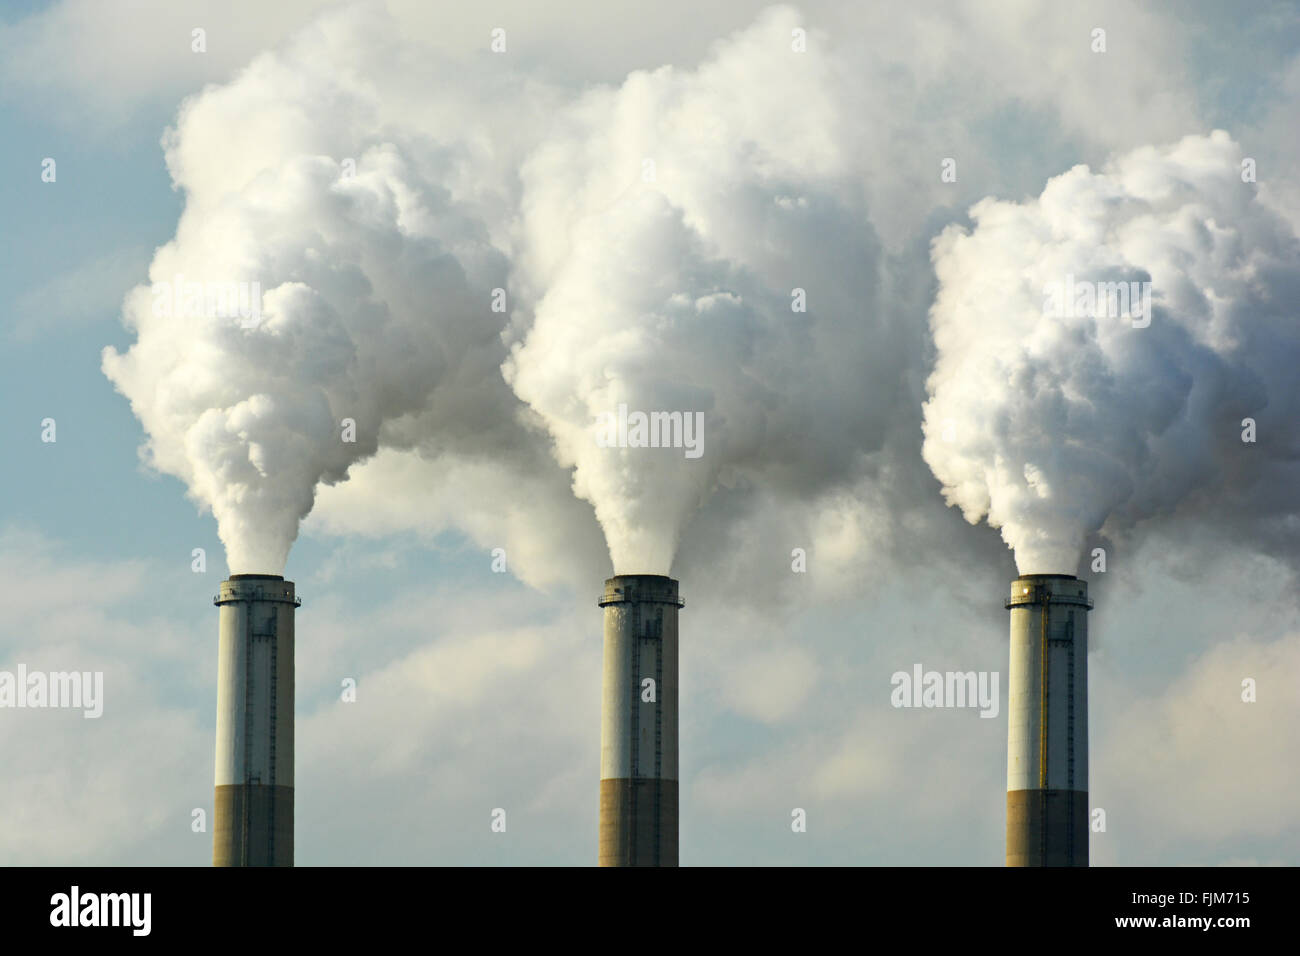 Fossil Fuel Power Plant : Multiple coal fossil fuel power plant smokestacks emit